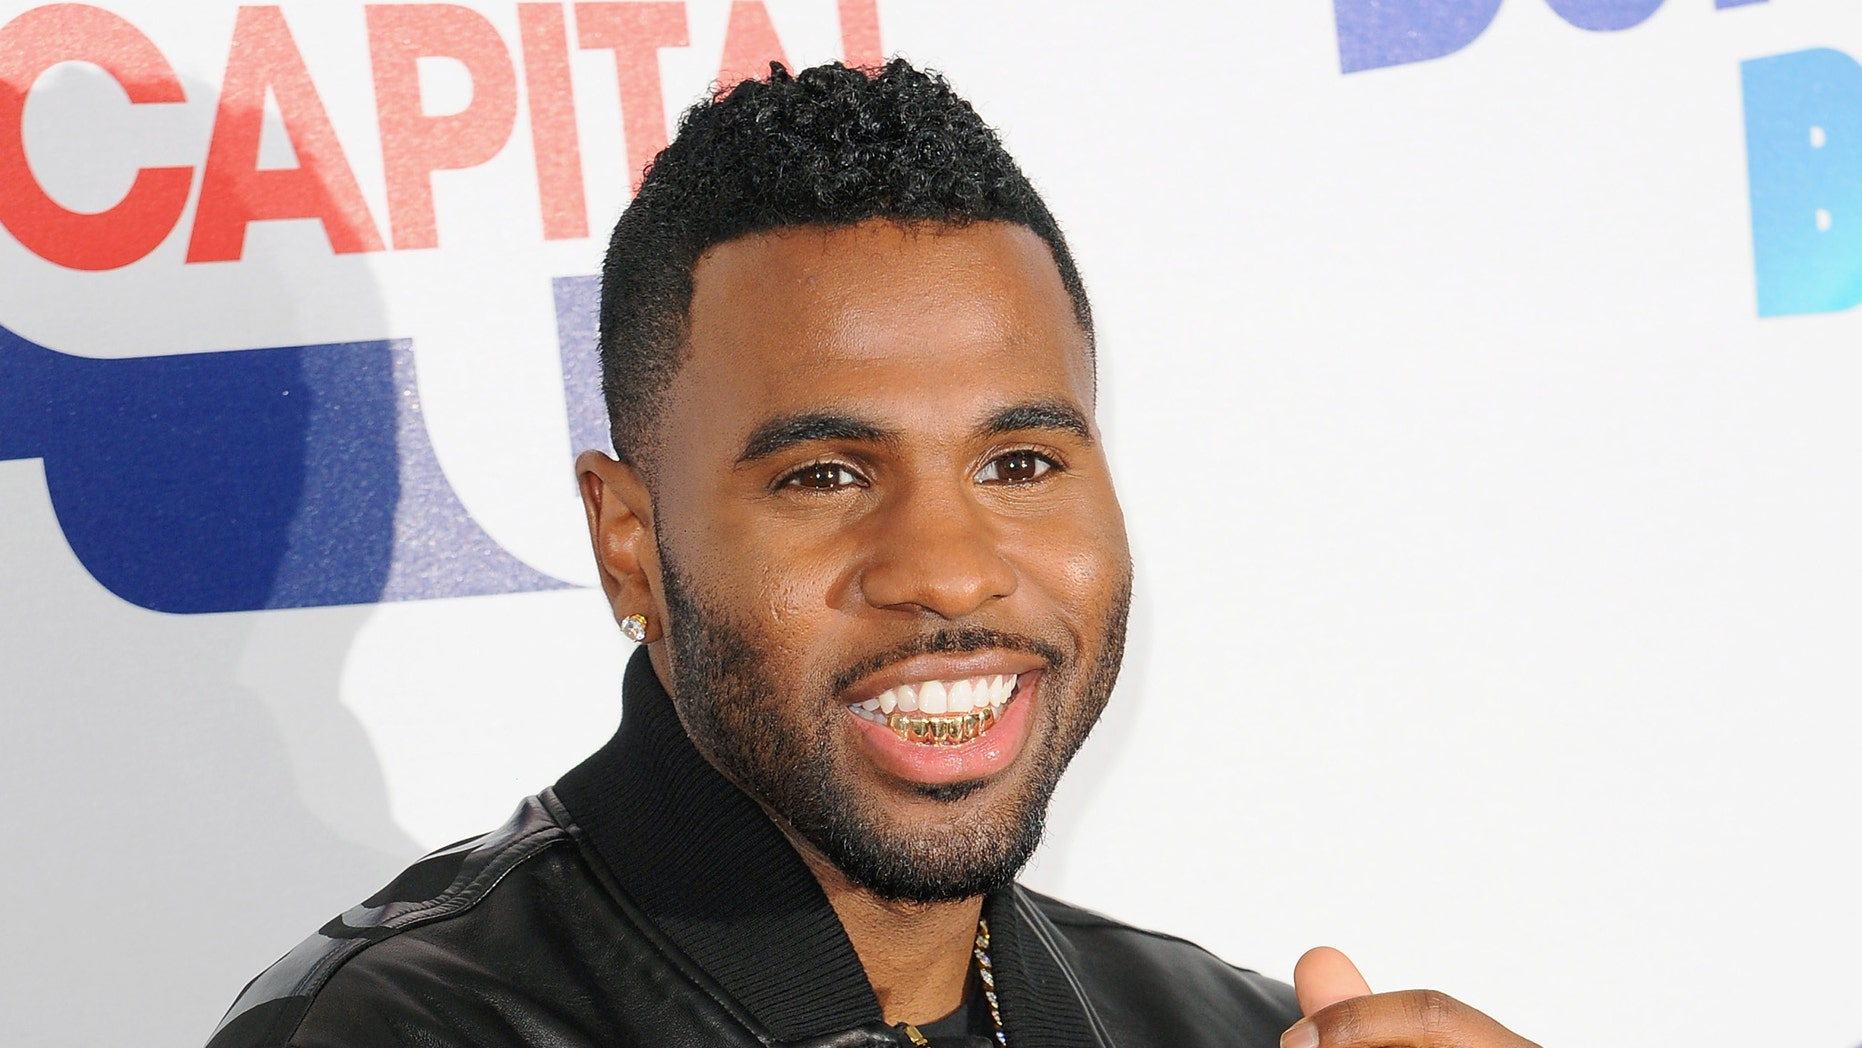 Jason Derulo failed to show up to FIFA's World Cup opening ceremony.